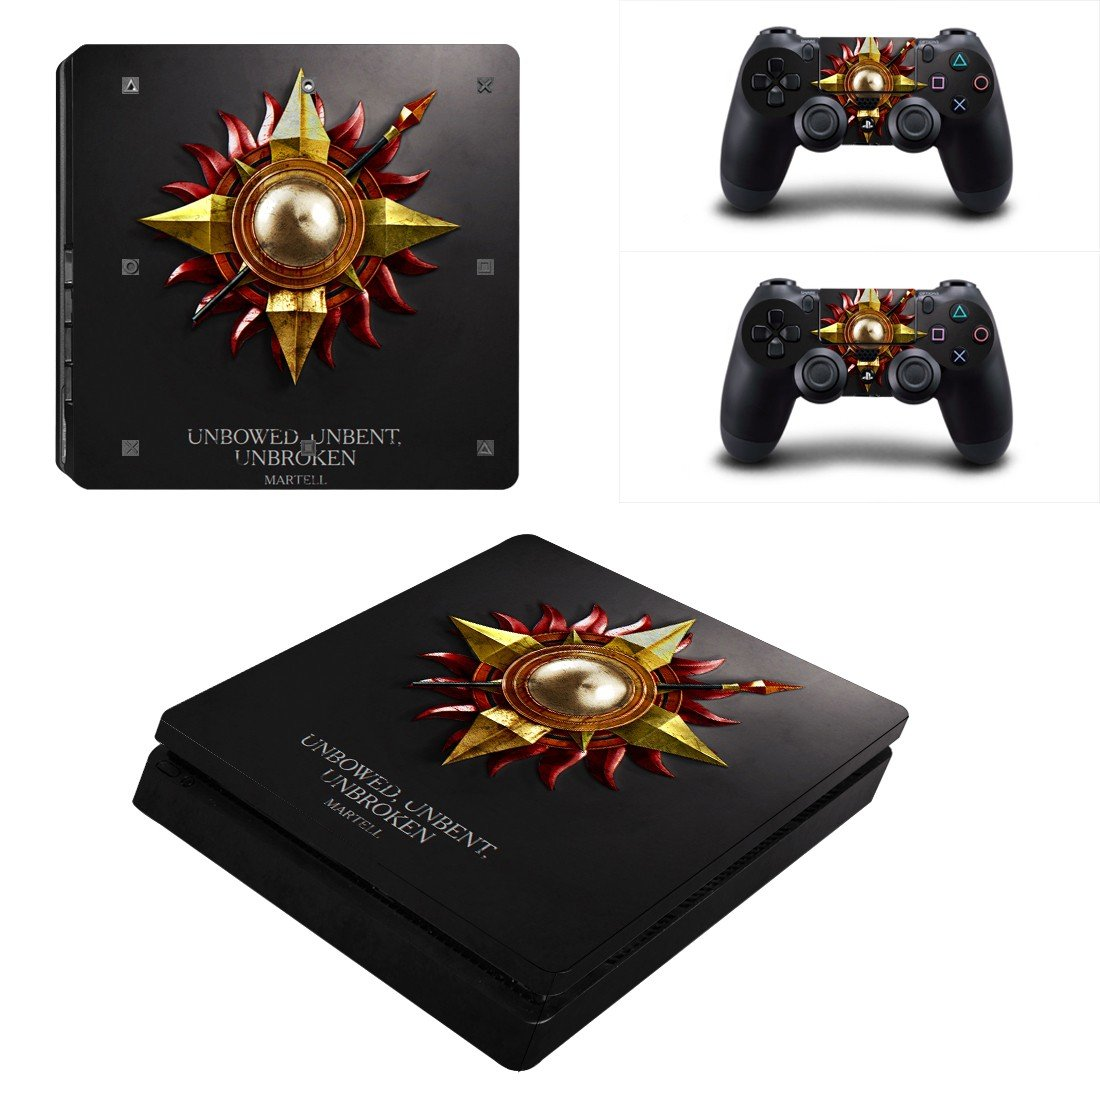 unbowed unbent unbroken Play Station 4 slim skin decal for console and 2 controllers